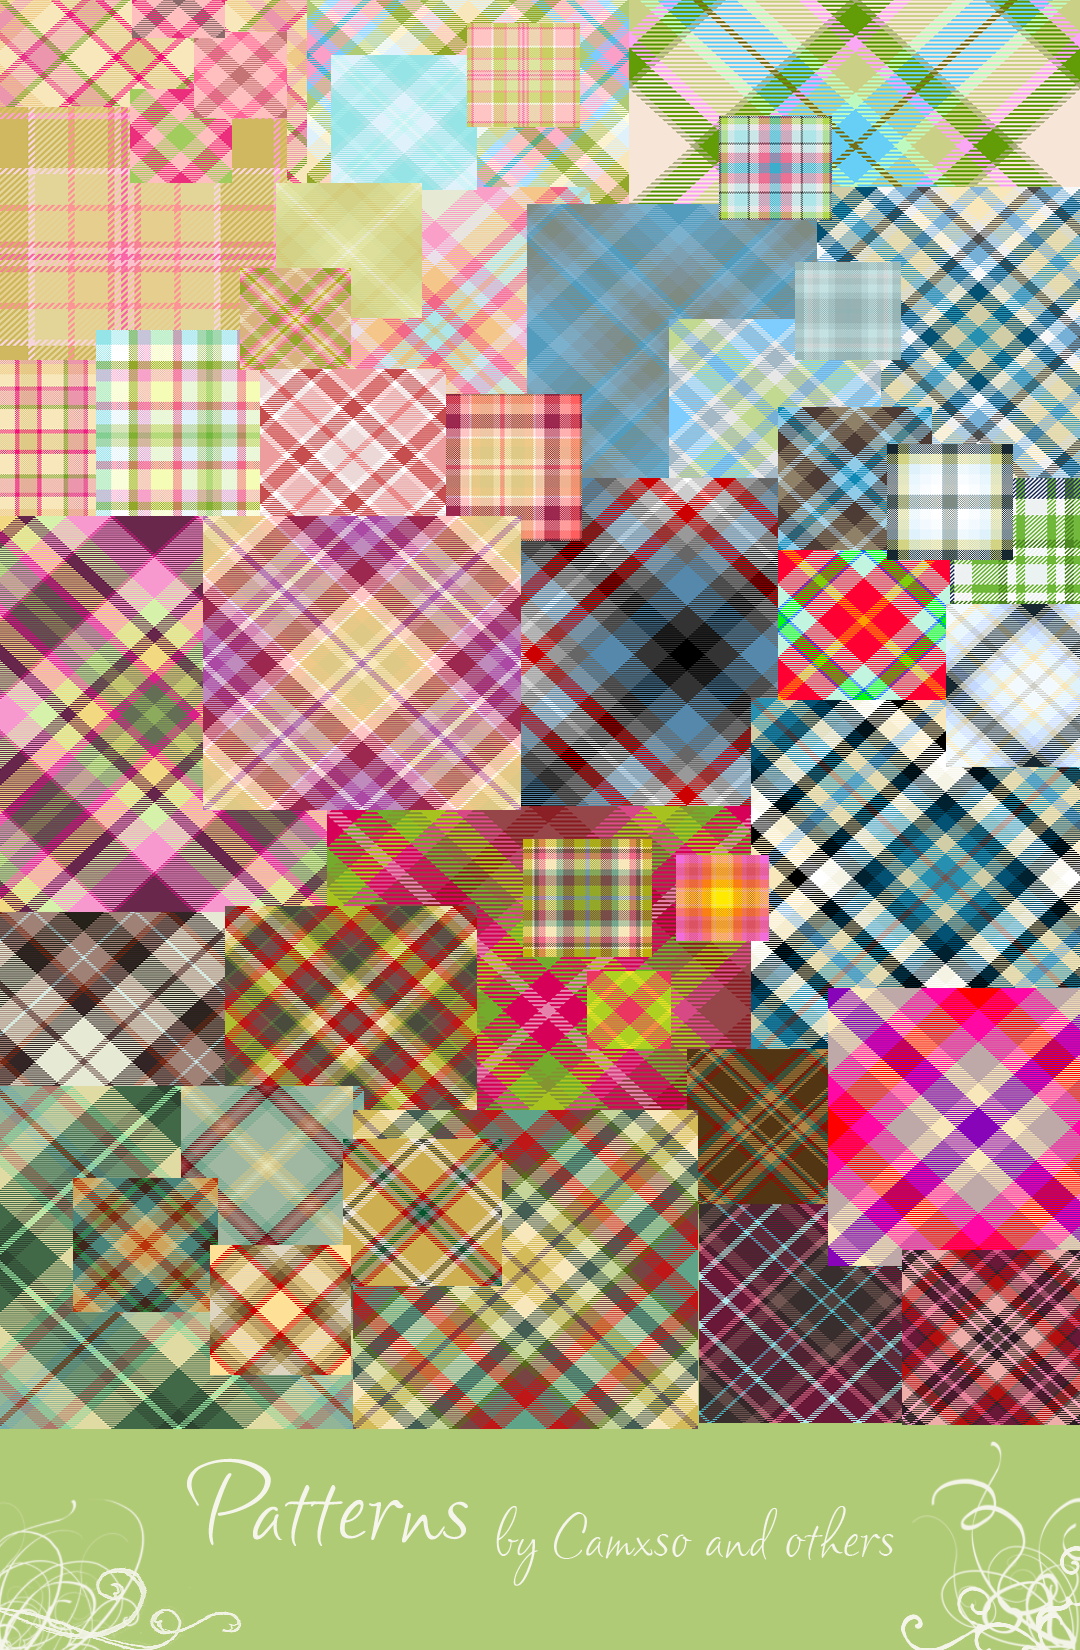 Tartan Patterns by Camxso